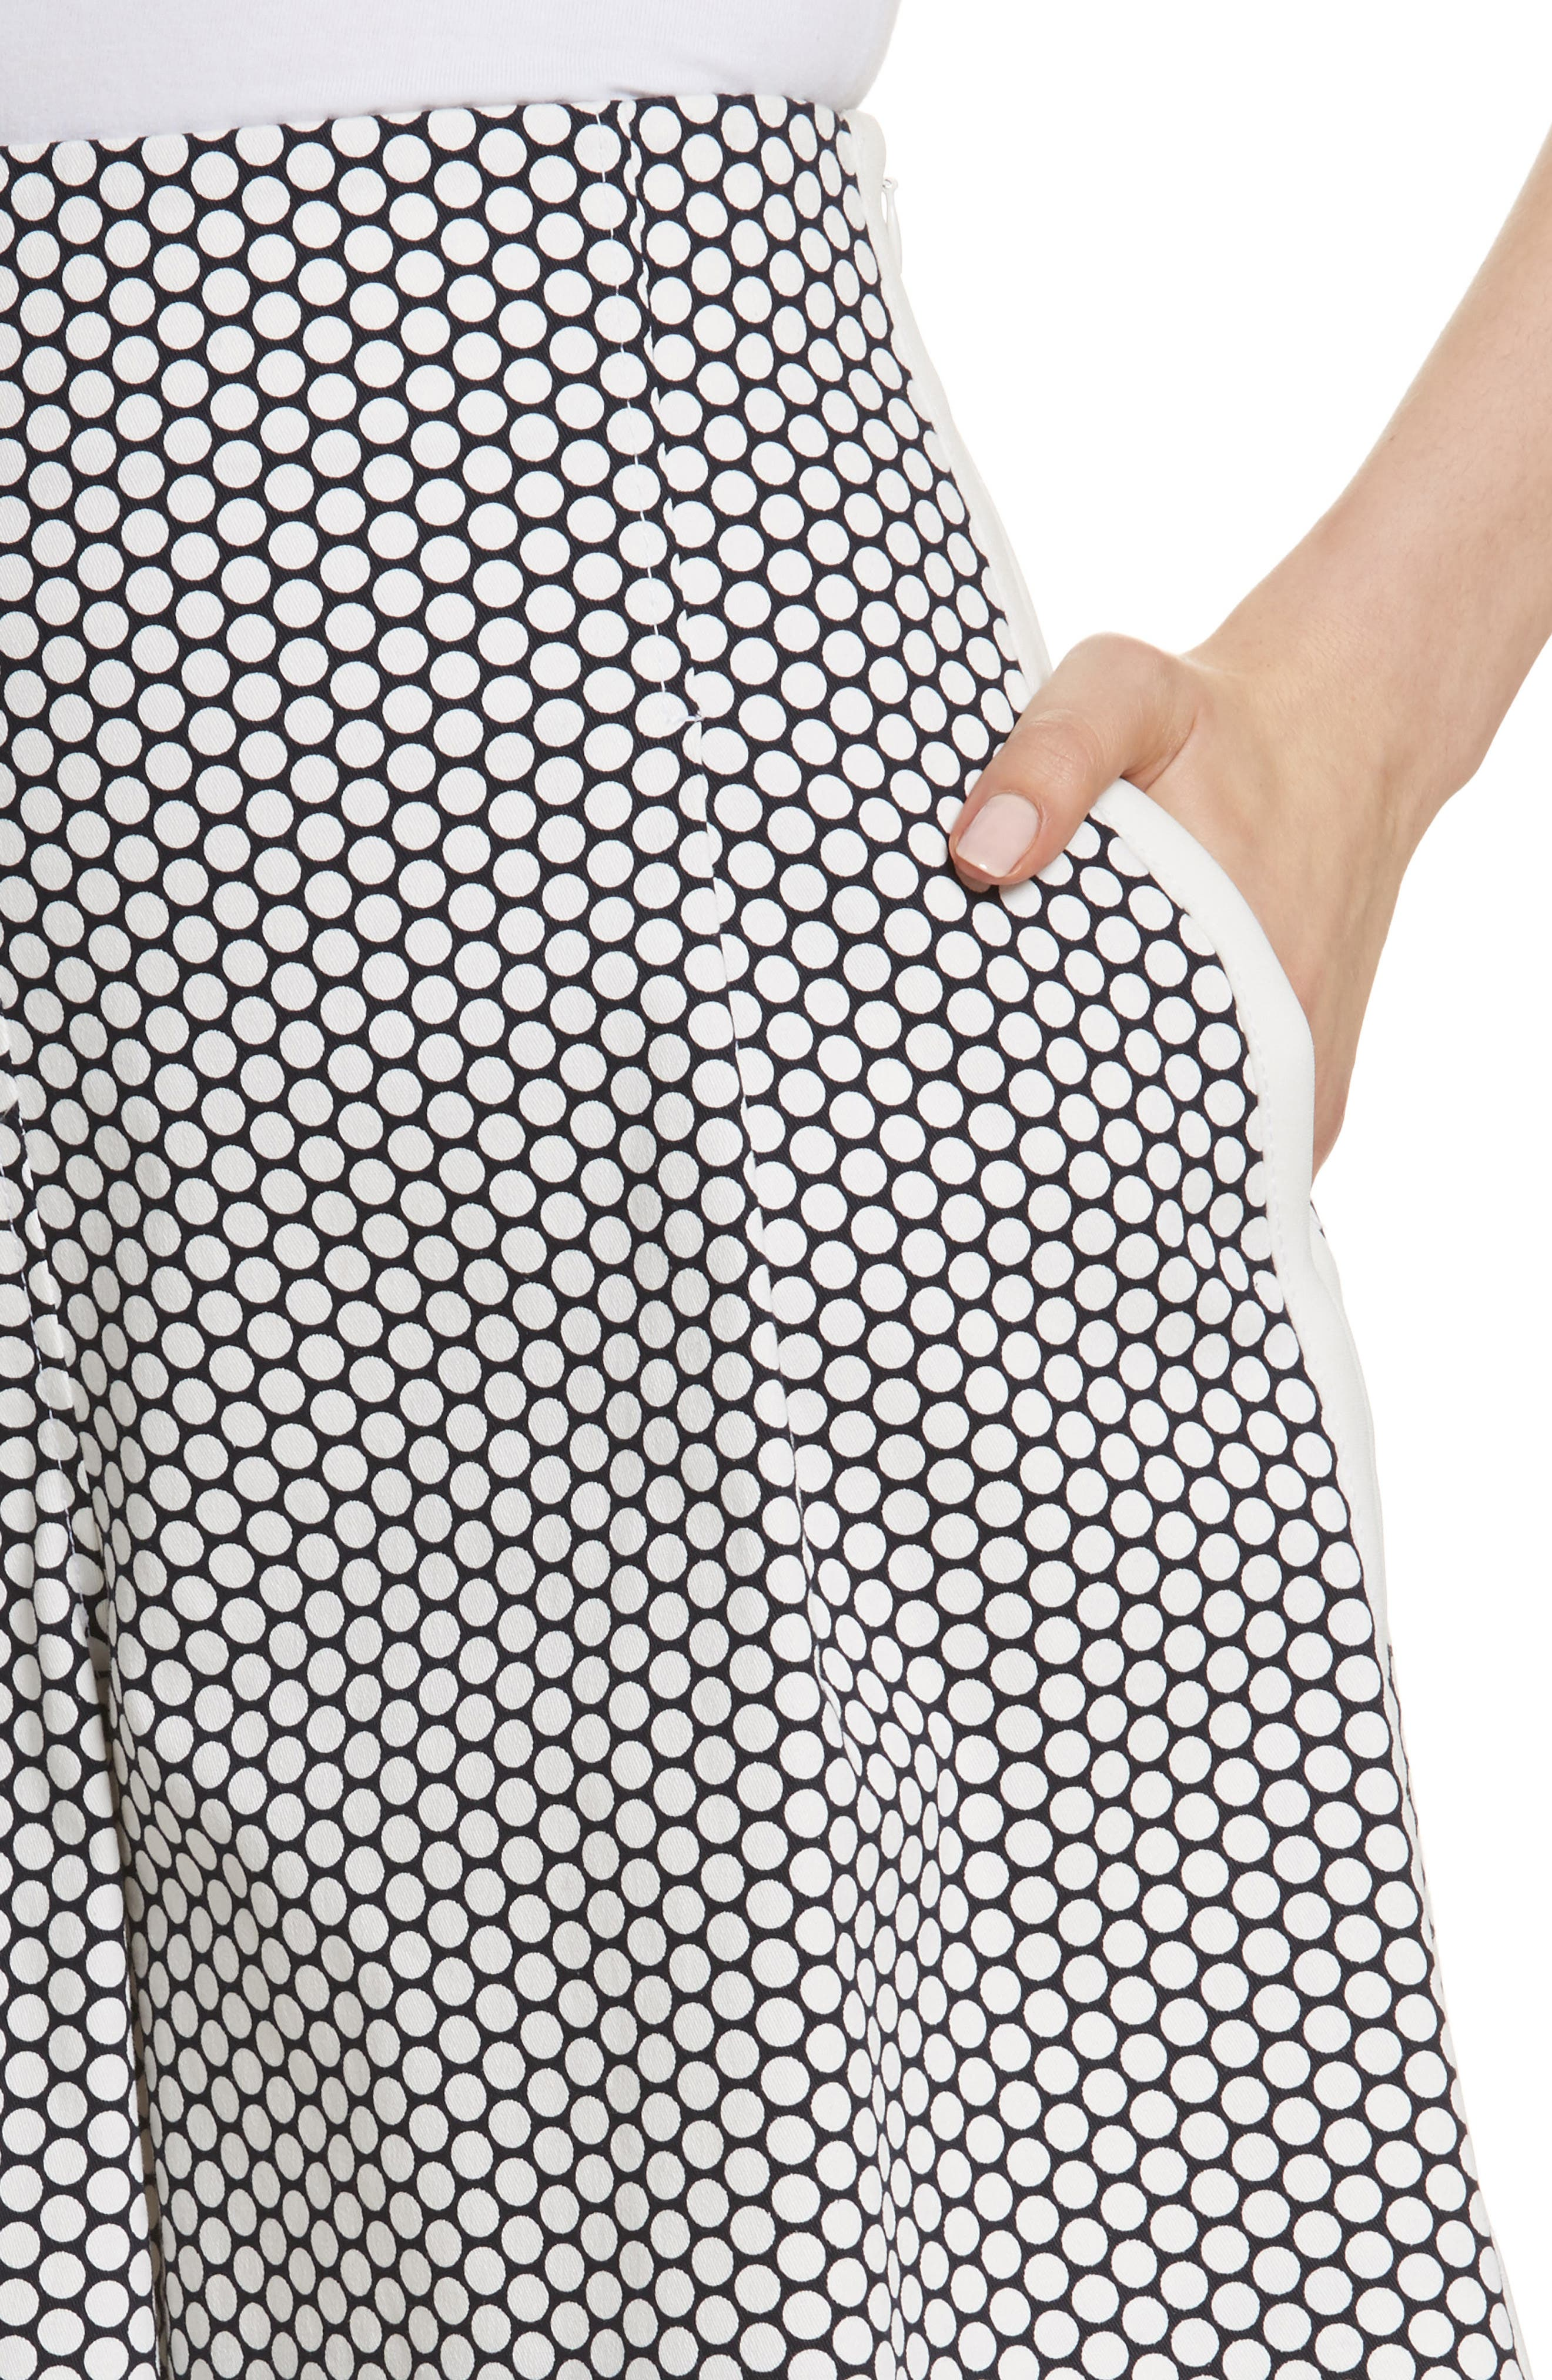 Diane von Furstenberg Dot High Waist Stretch Cotton Shorts,                             Alternate thumbnail 4, color,                             Rowe Dot Ivory